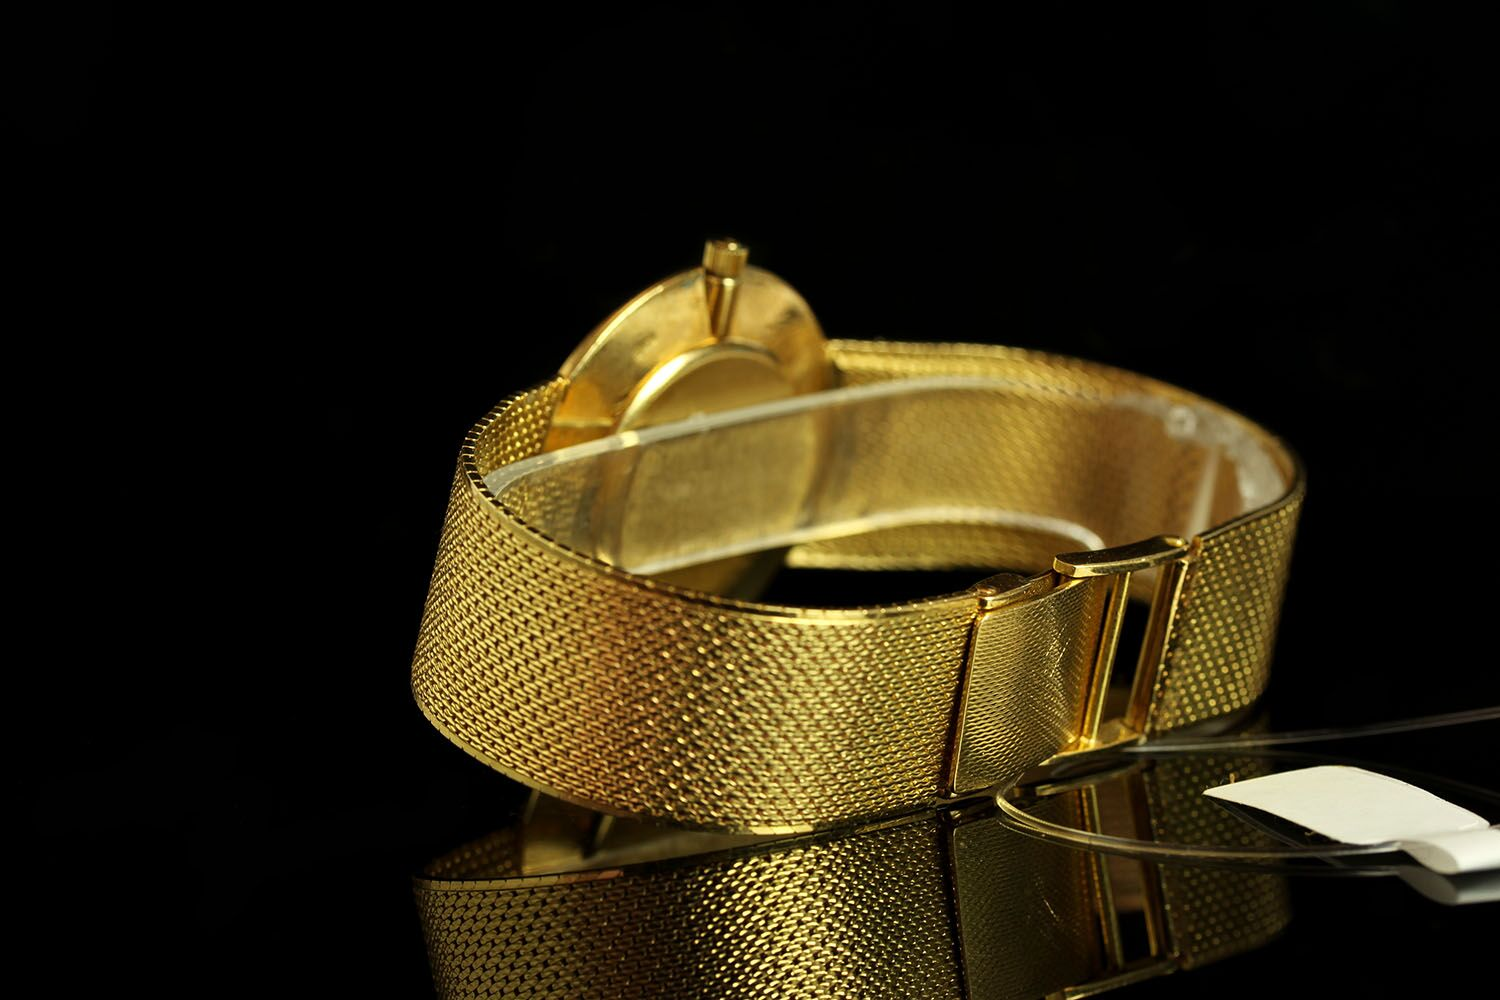 GENTLEMANS VINTAGE UNIVERSAL , round, gold dial and gold hands, gold baton markers,non date, 30mm - Image 2 of 2